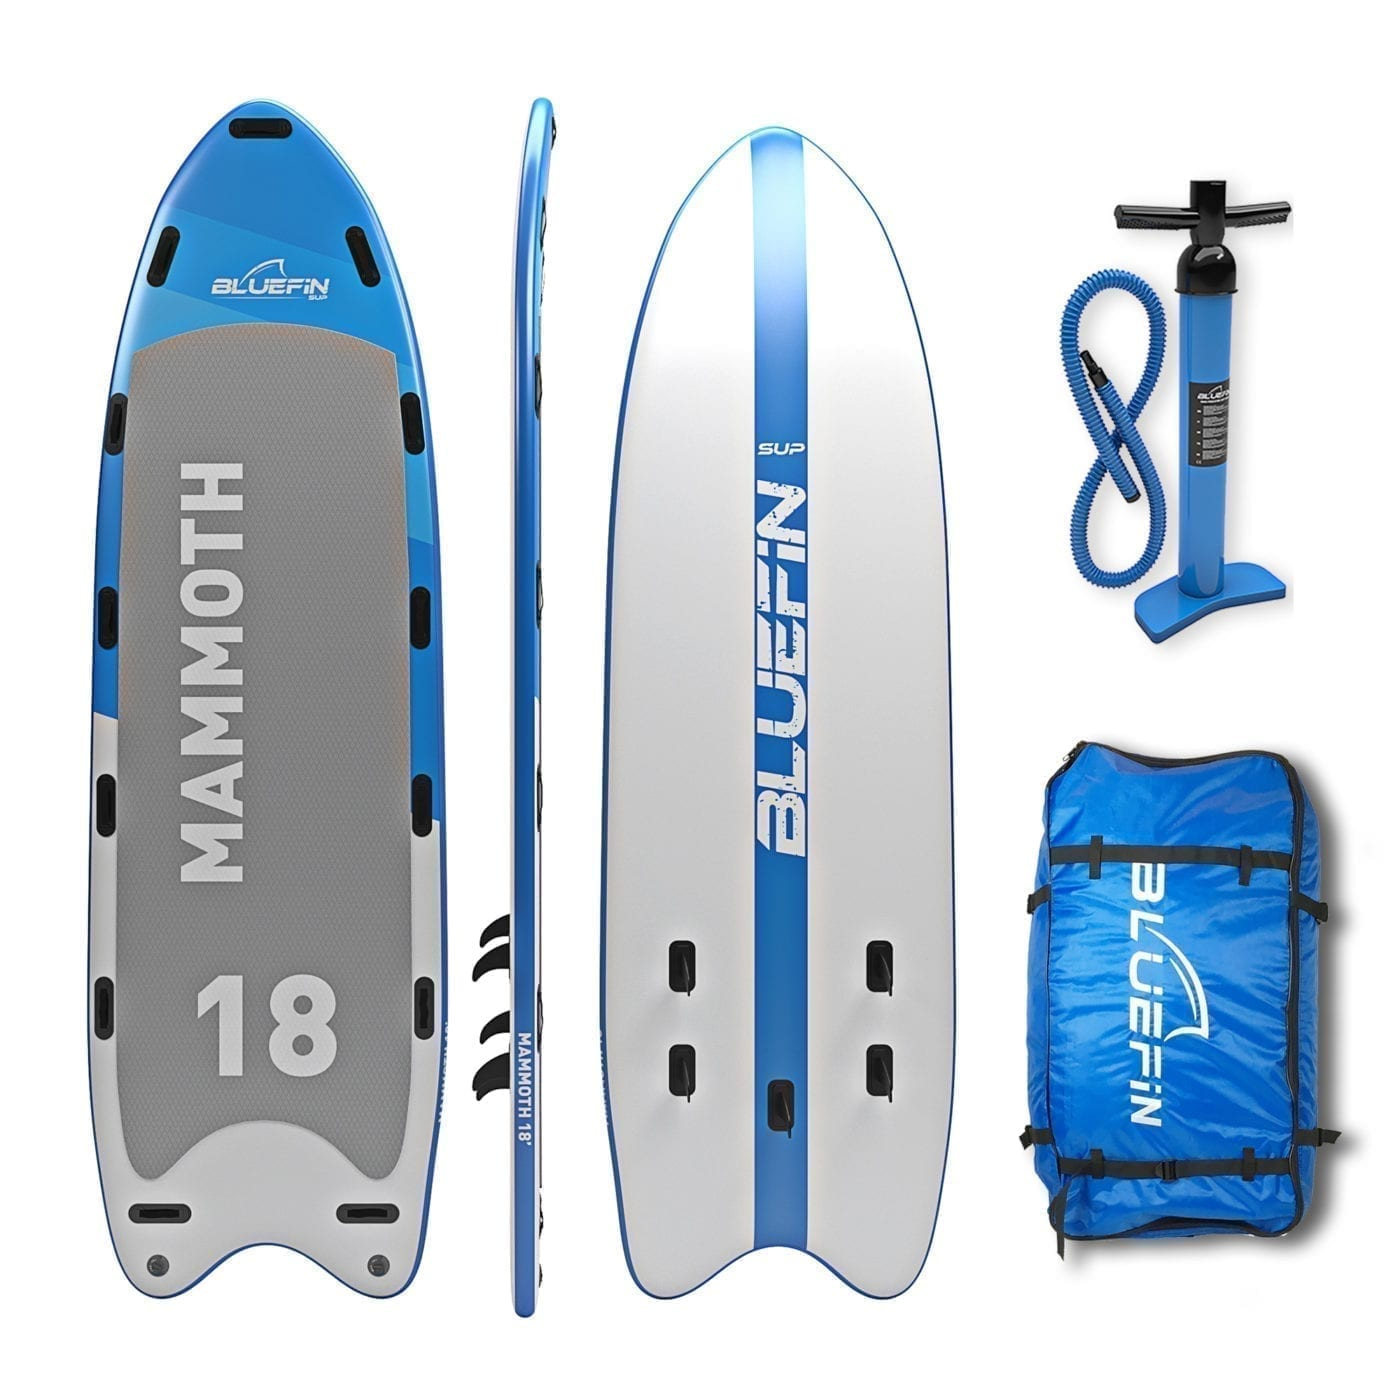 Bluefin Sup 18 Mammoth Stand Up Paddle Board Kit 10